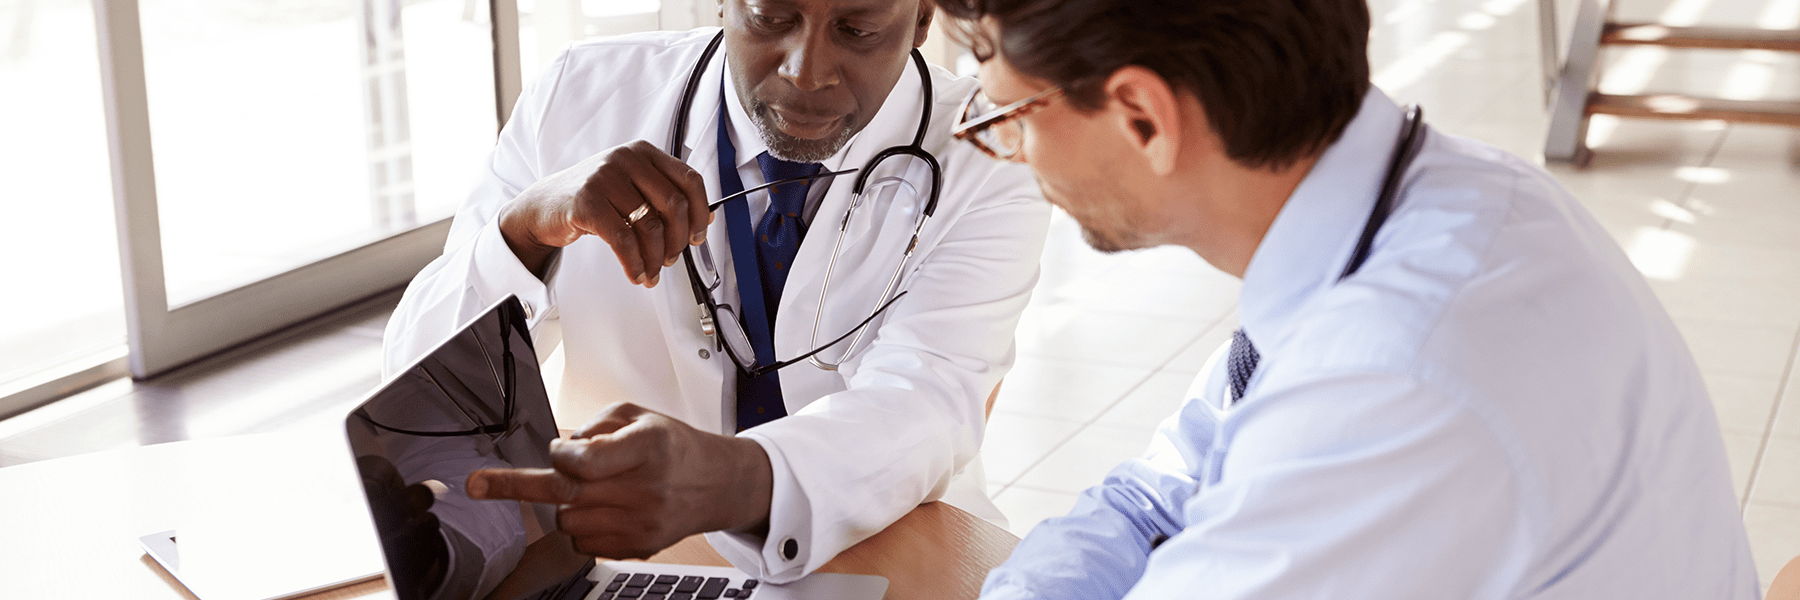 importance of advanced analytics in healthcare image